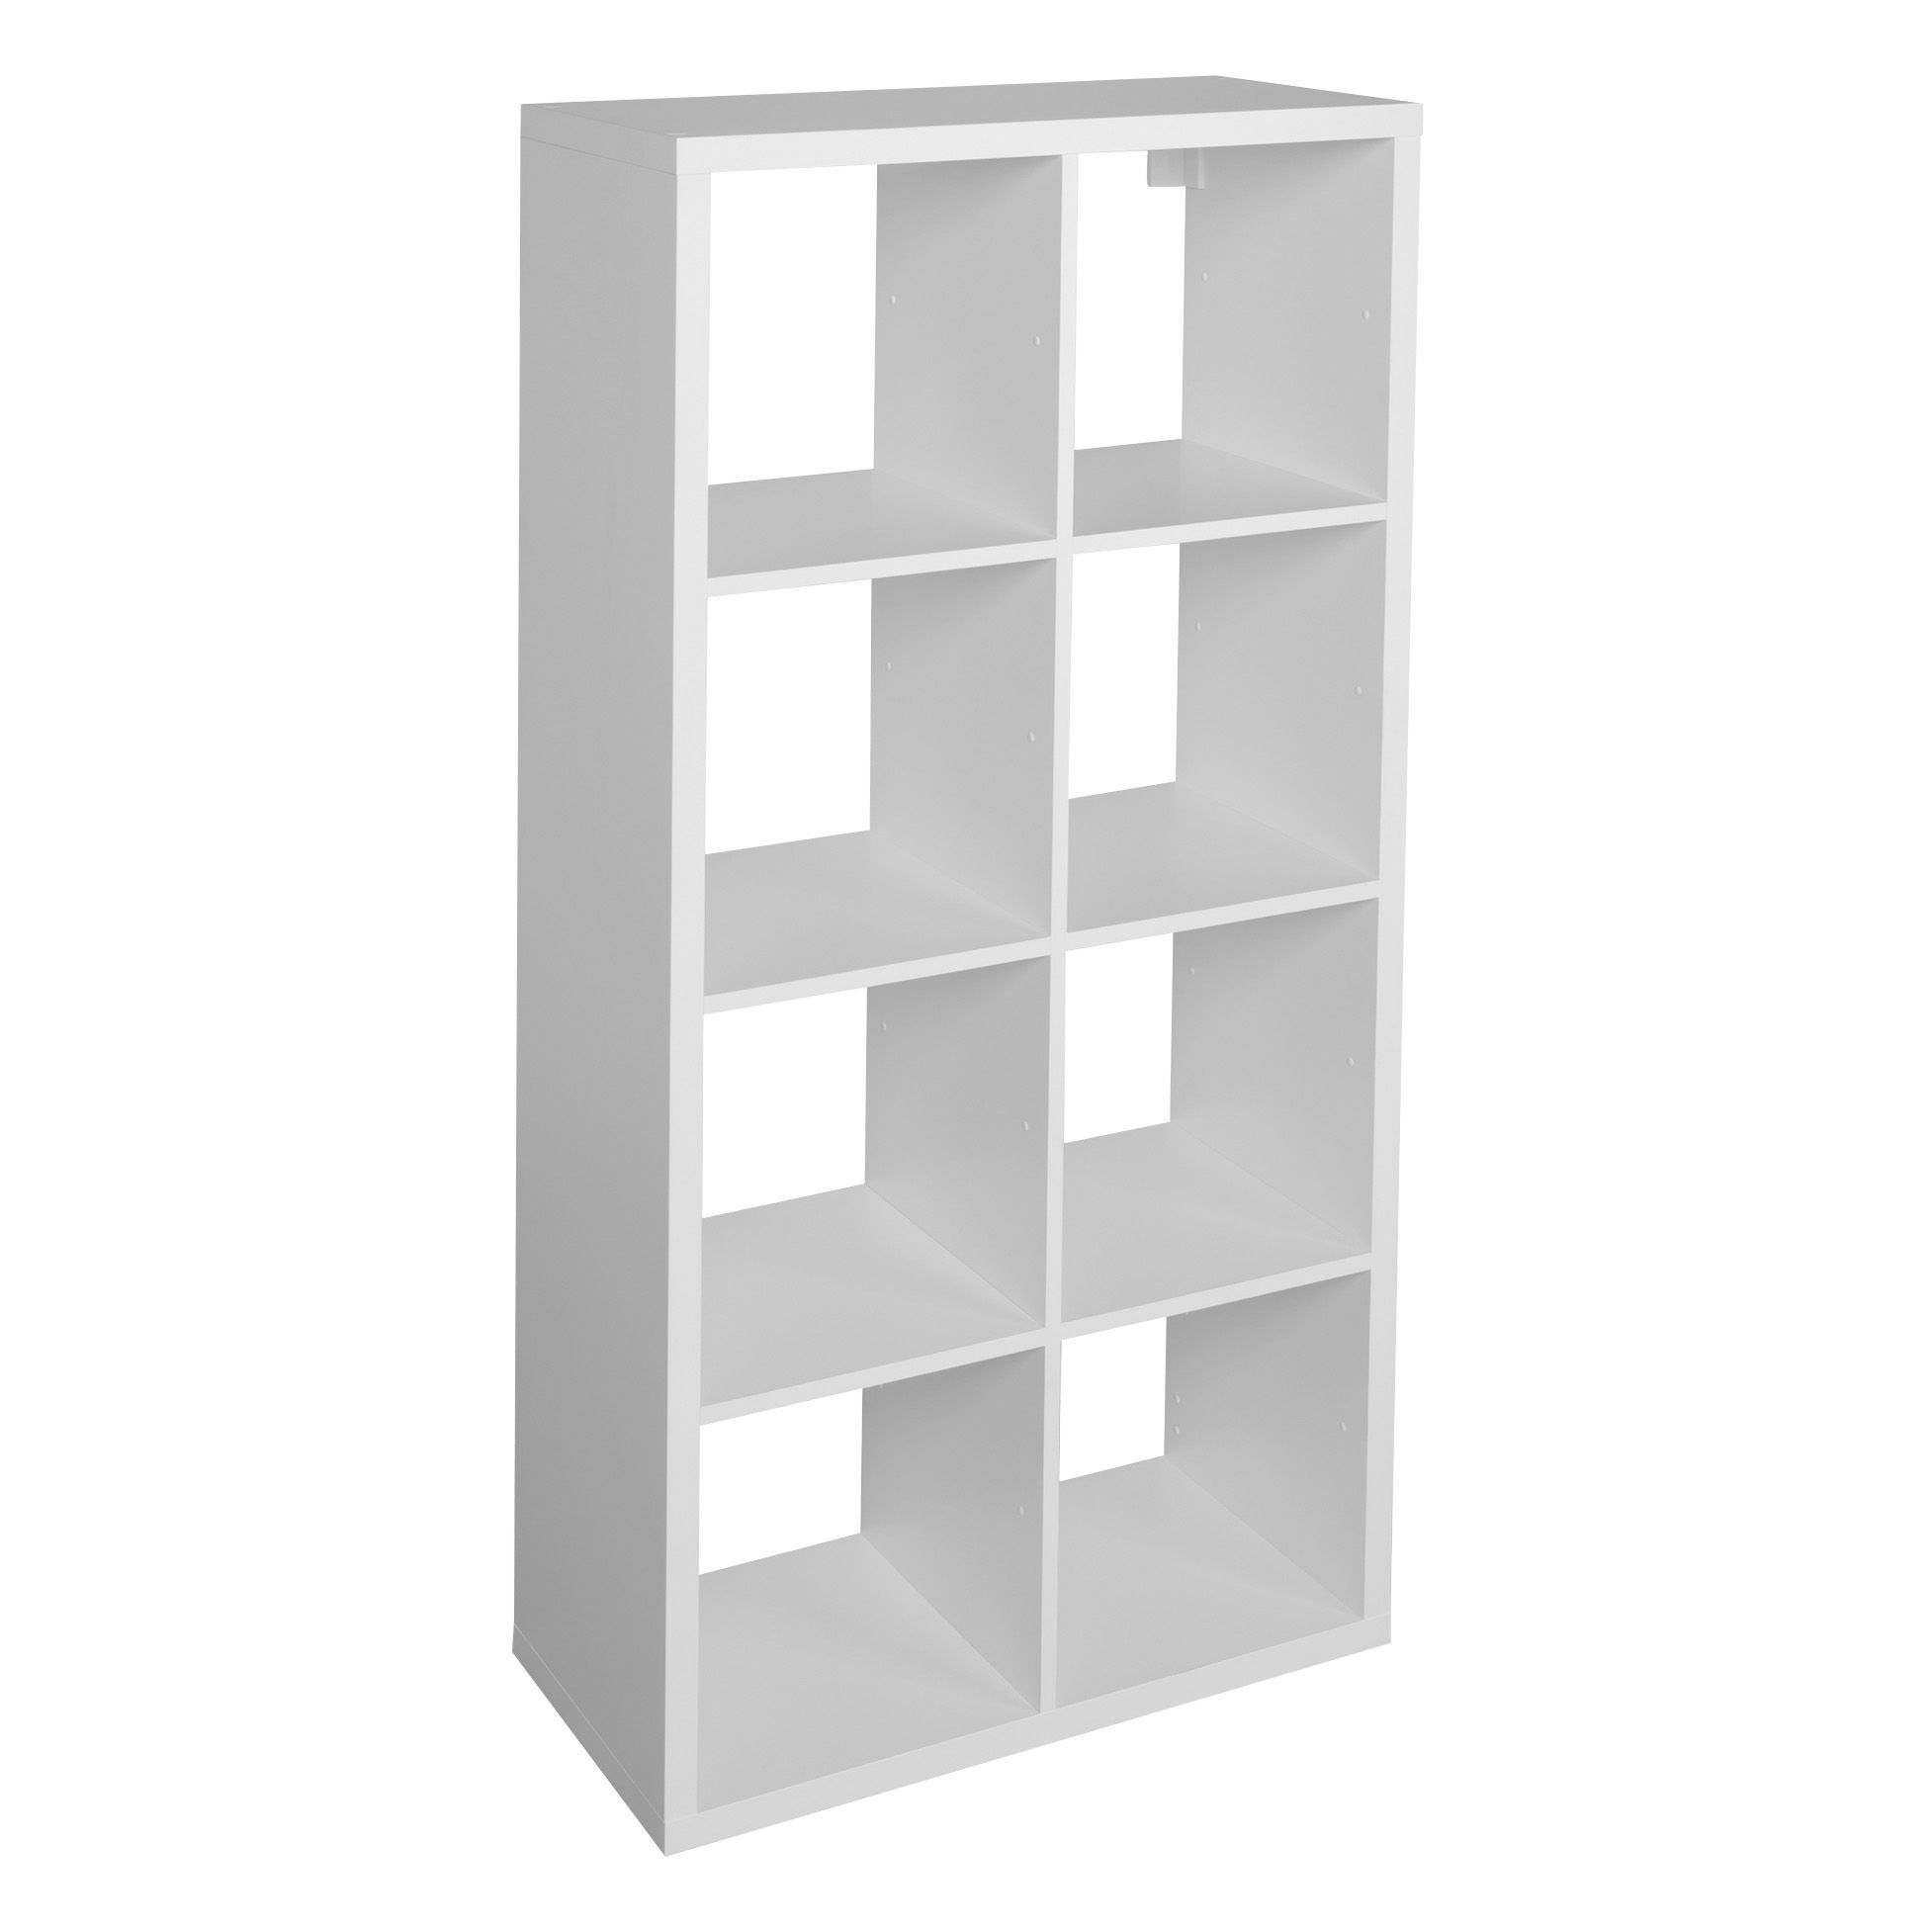 Form Mixxit White 8 Cube Shelving Unit H 1420mm W 740mm Departments Diy At B Amp Q Cube Shelving Unit Shelving Unit Cube Shelves